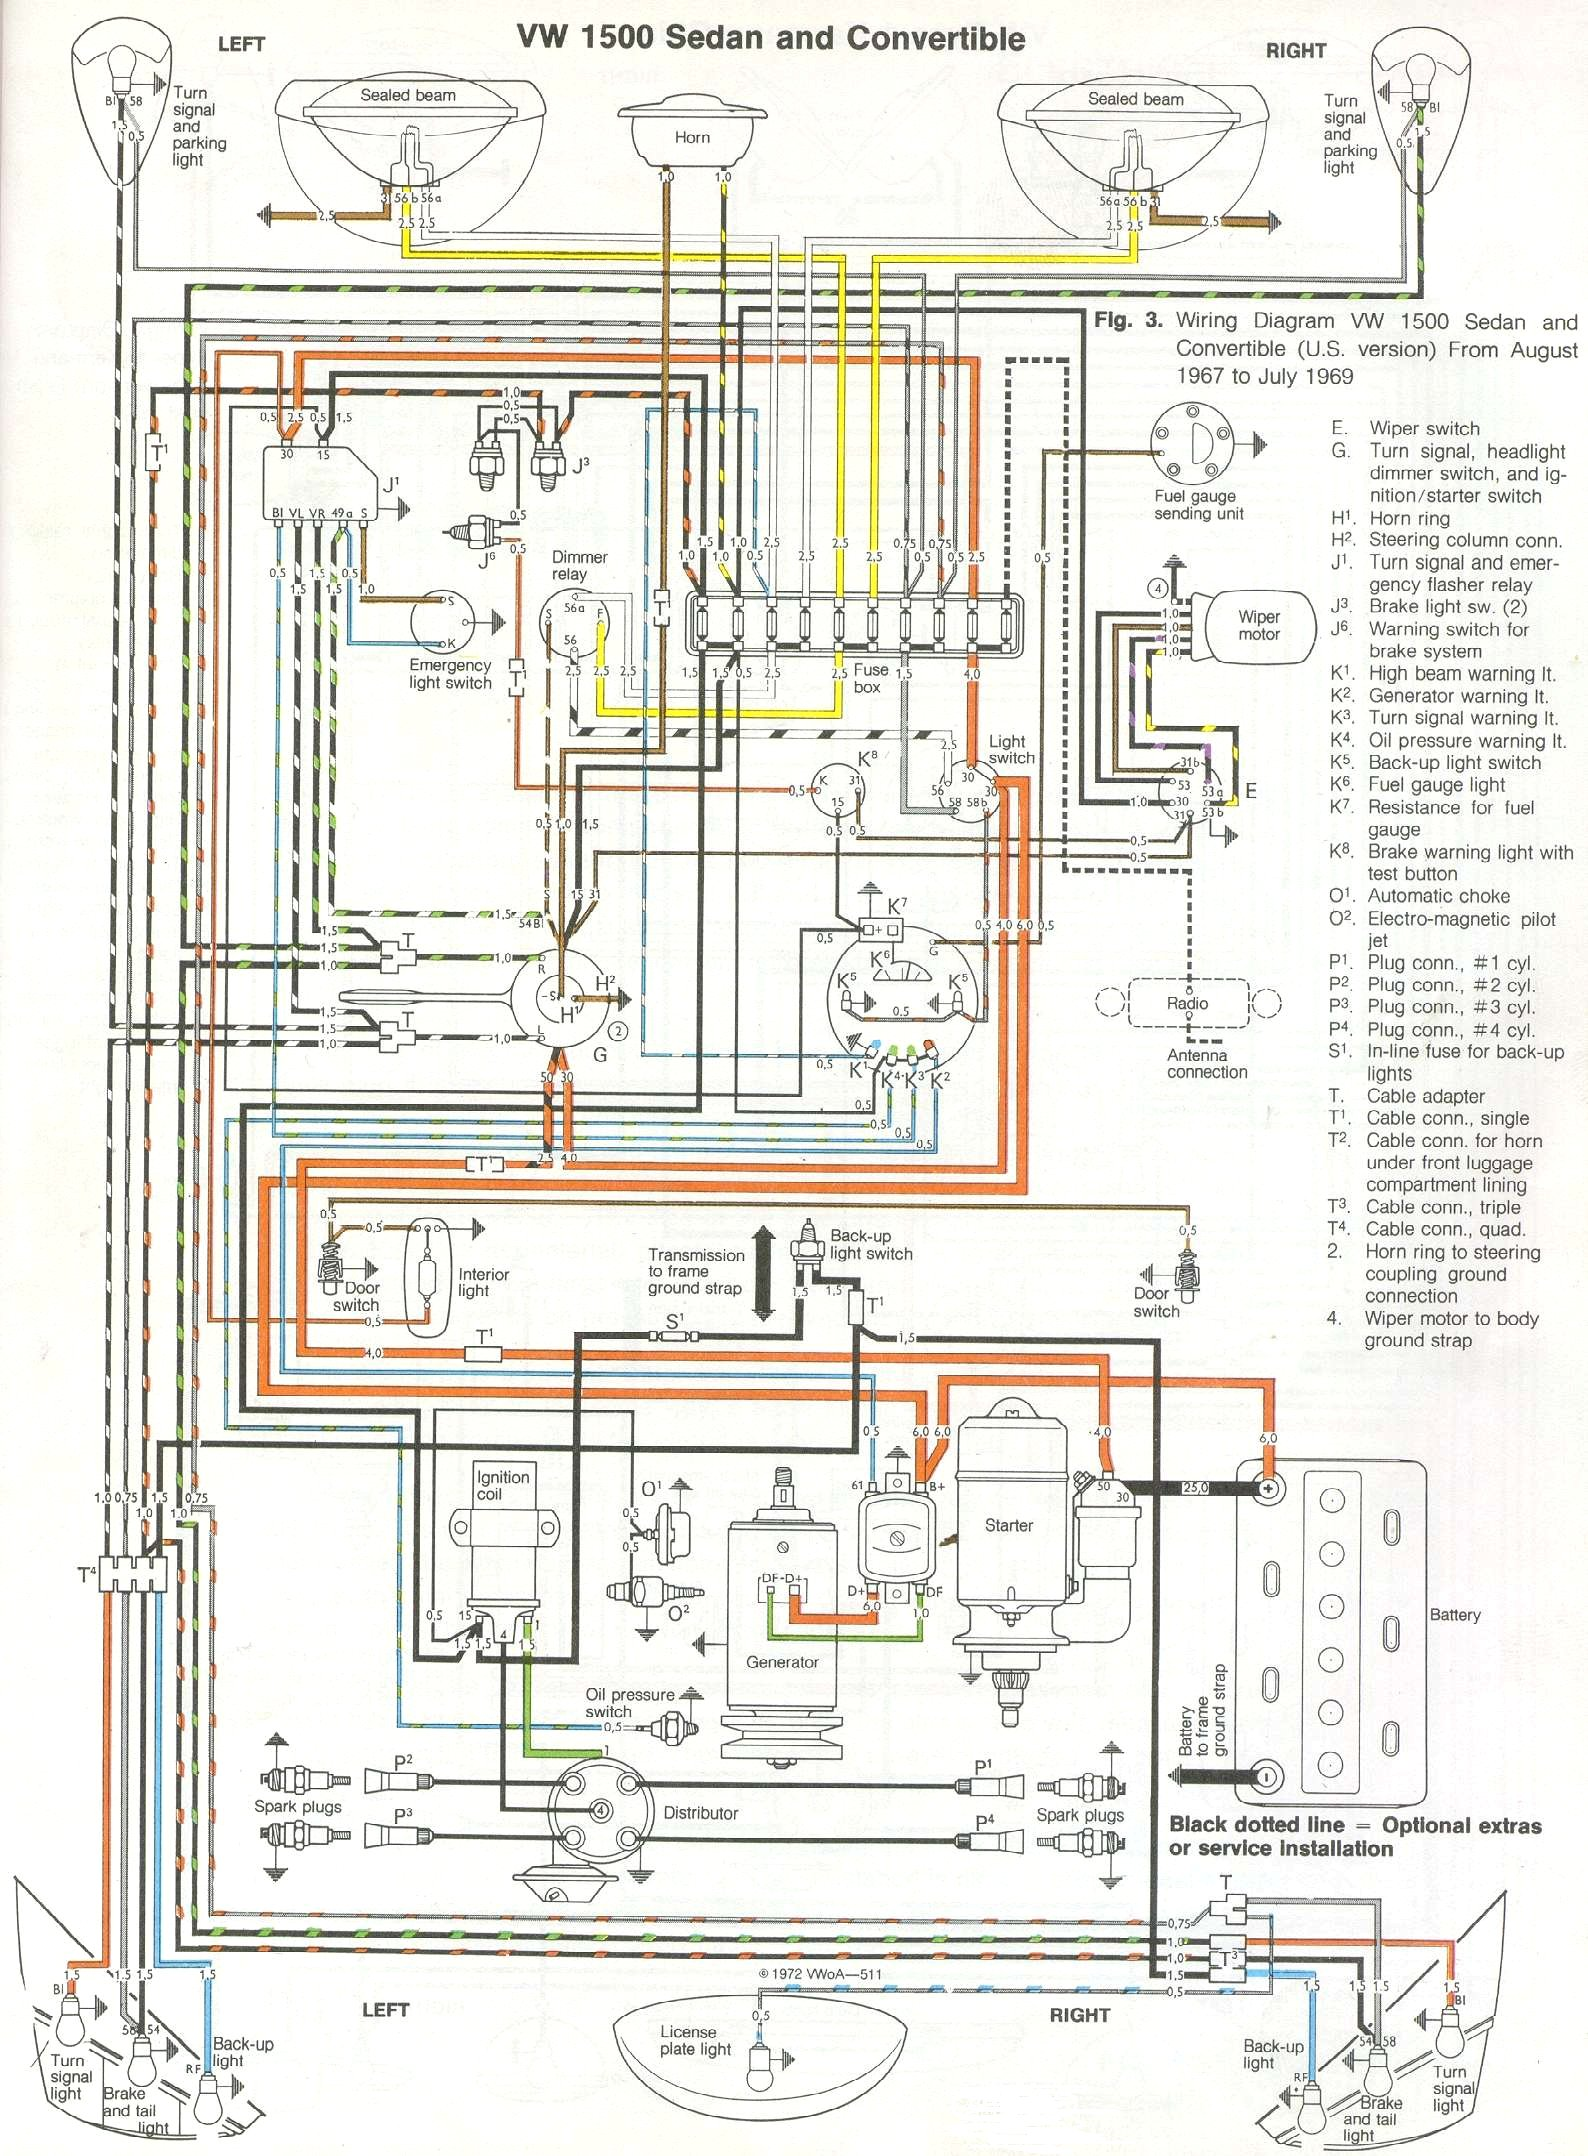 1969 71 beetle wiring diagram thegoldenbug com rh thegoldenbug com 71 vw super beetle wiring diagram 71 vw beetle wiring harness